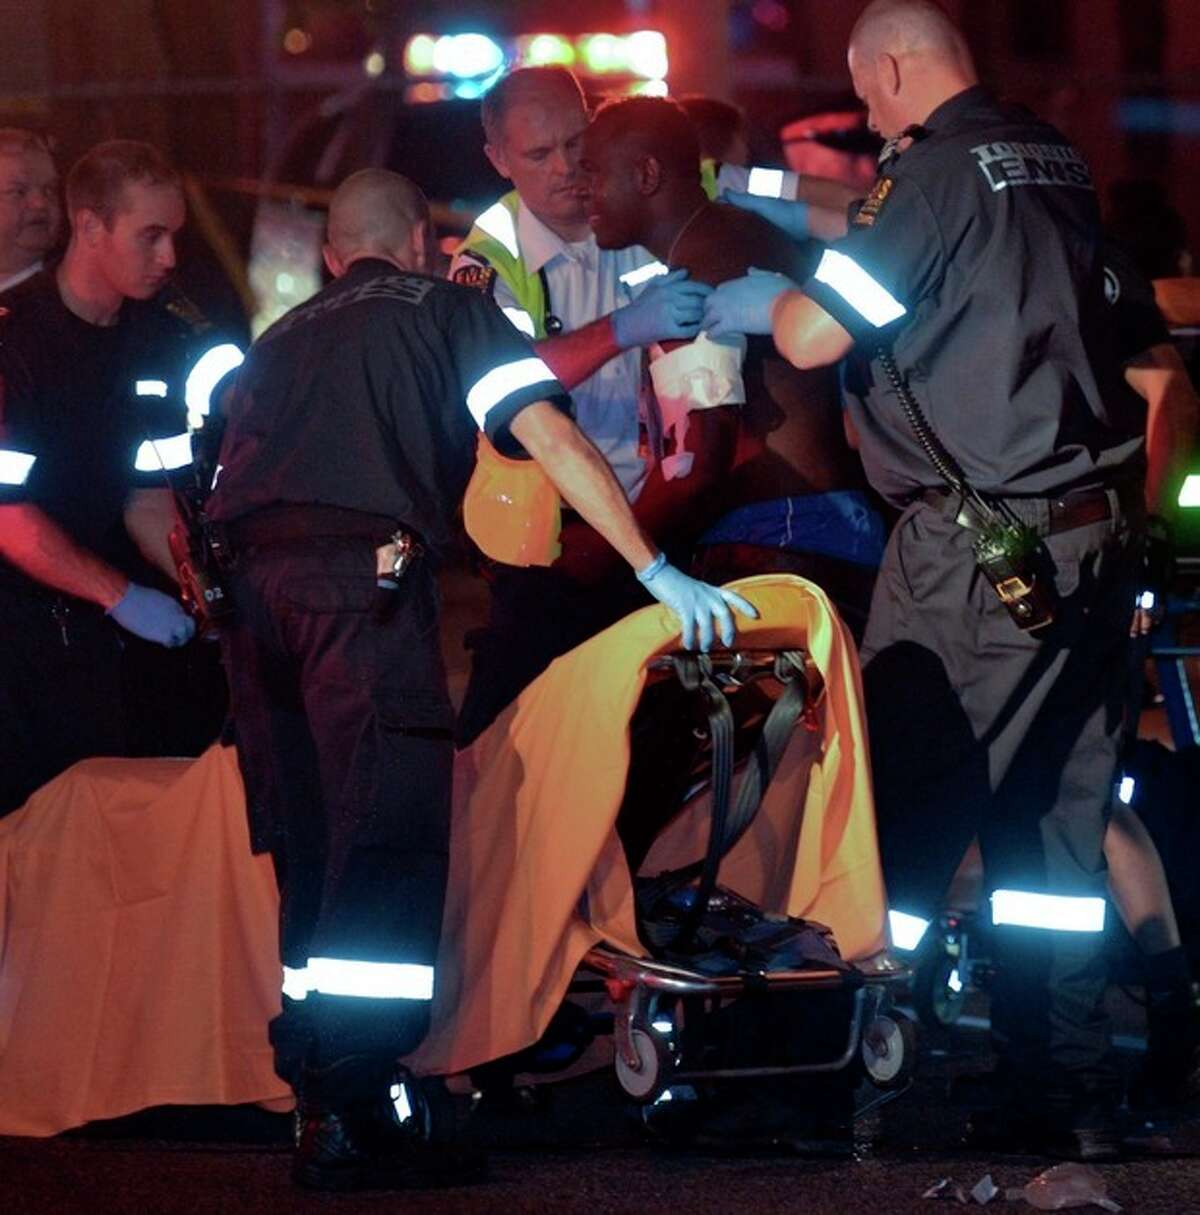 A man is attended to on the scene and loaded onto a gurney for transport following a shooting that left a least 19 injured and two dead in Toronto late Monday, July 16, 2012. The shooting took place after an altercation at an outdoor barbecue. (AP Photo/ THE CANADIAN PRESS/Toronto Star, Rick Madonik)